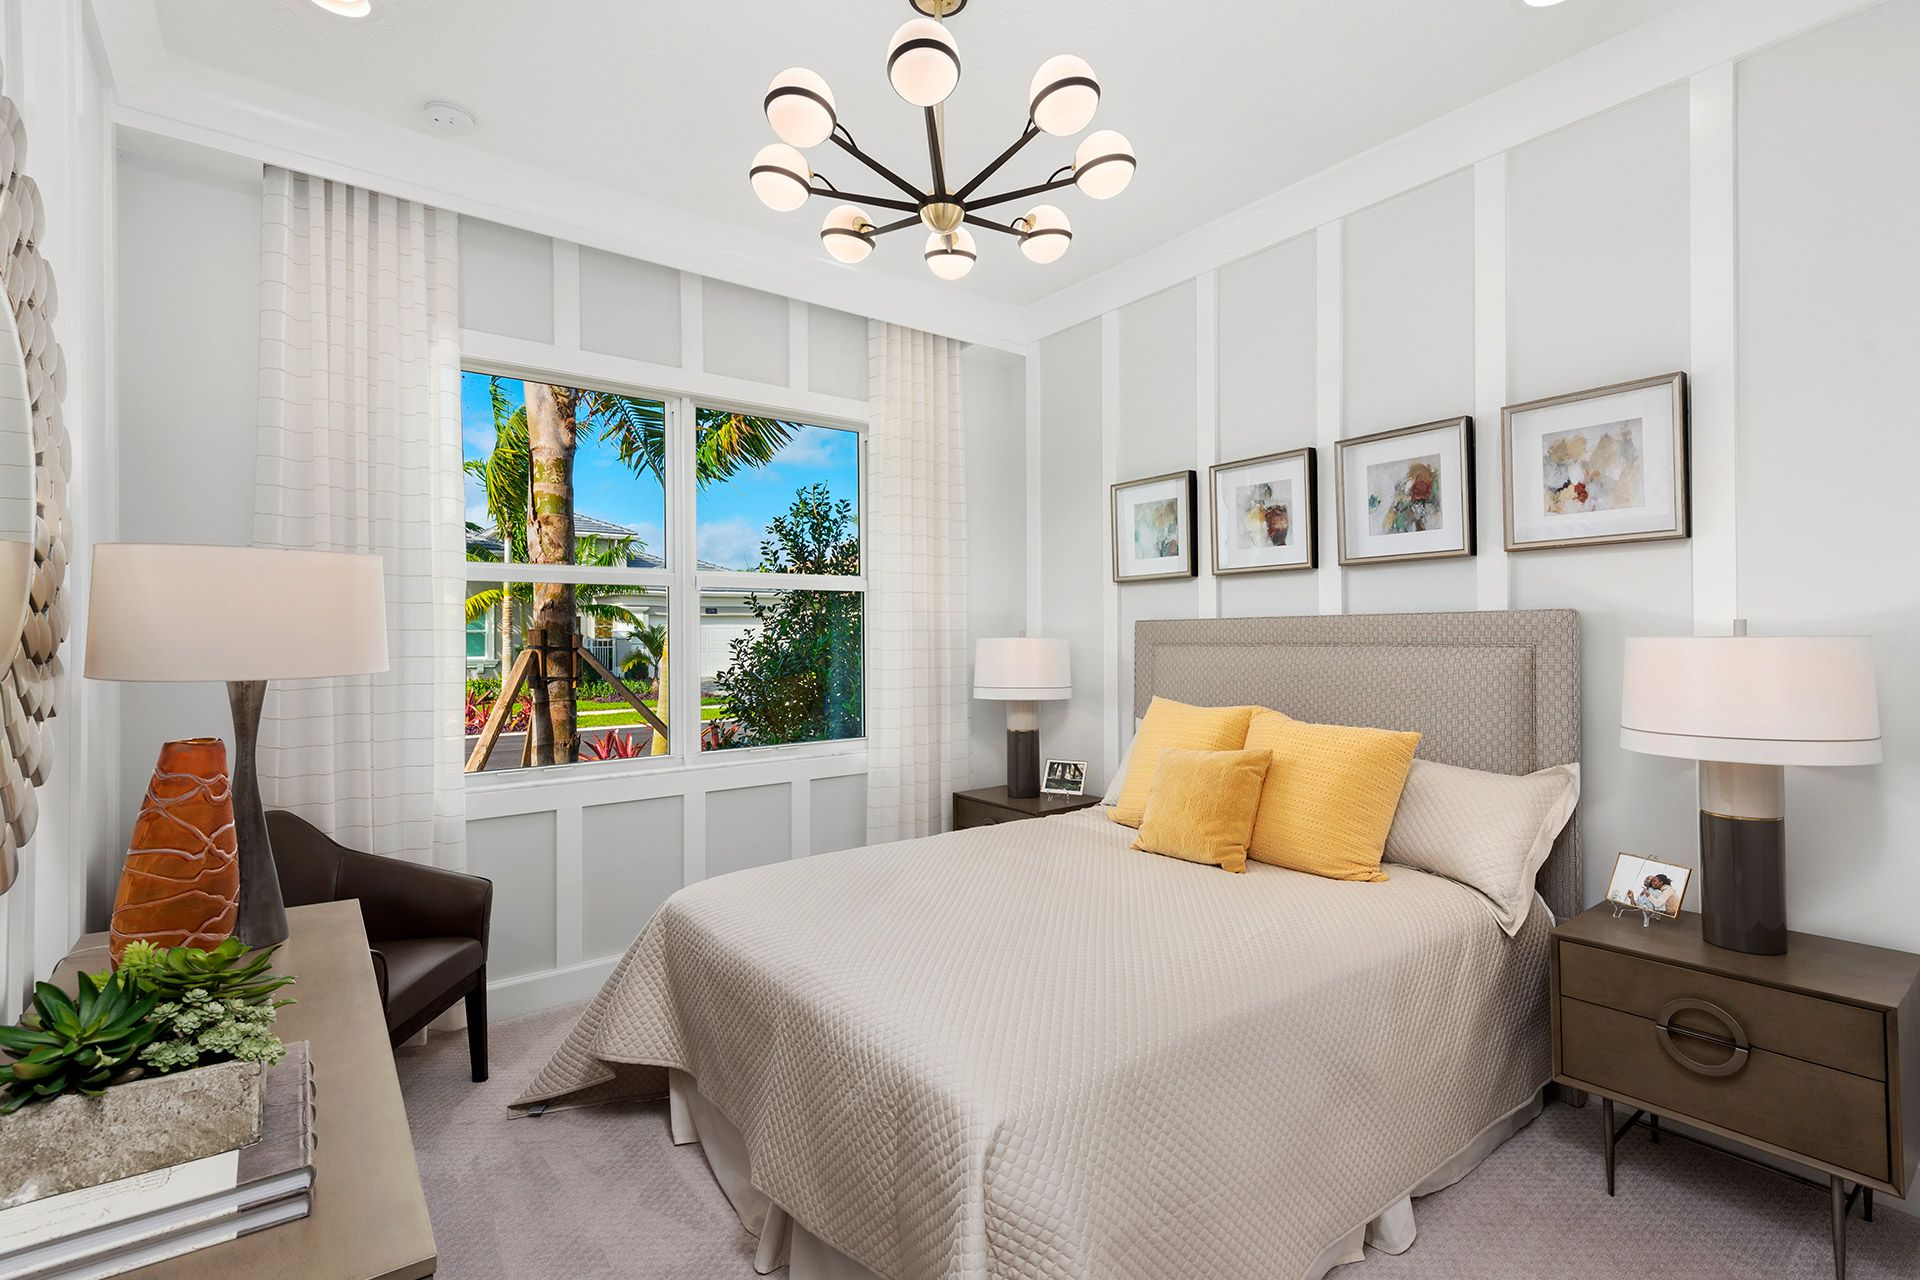 Bedroom featured in the Isabella By GL Homes in Tampa-St. Petersburg, FL